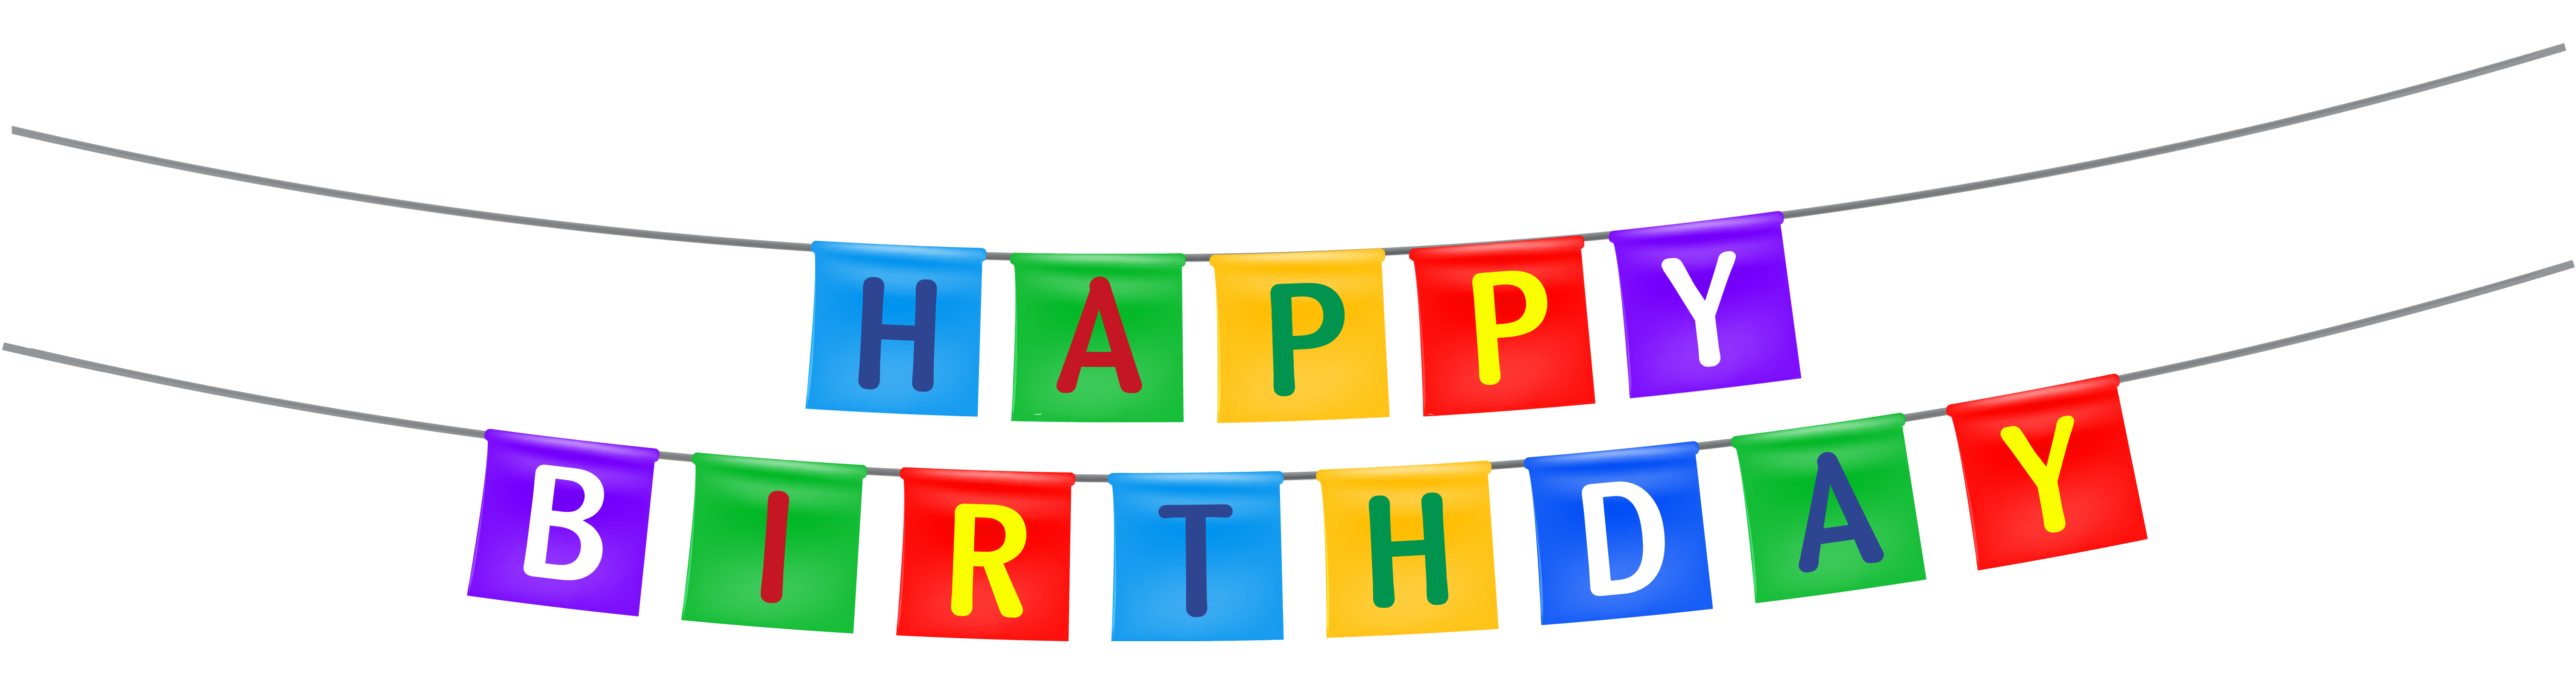 picture library download Happy birthday banner clipart. Streamer png image design